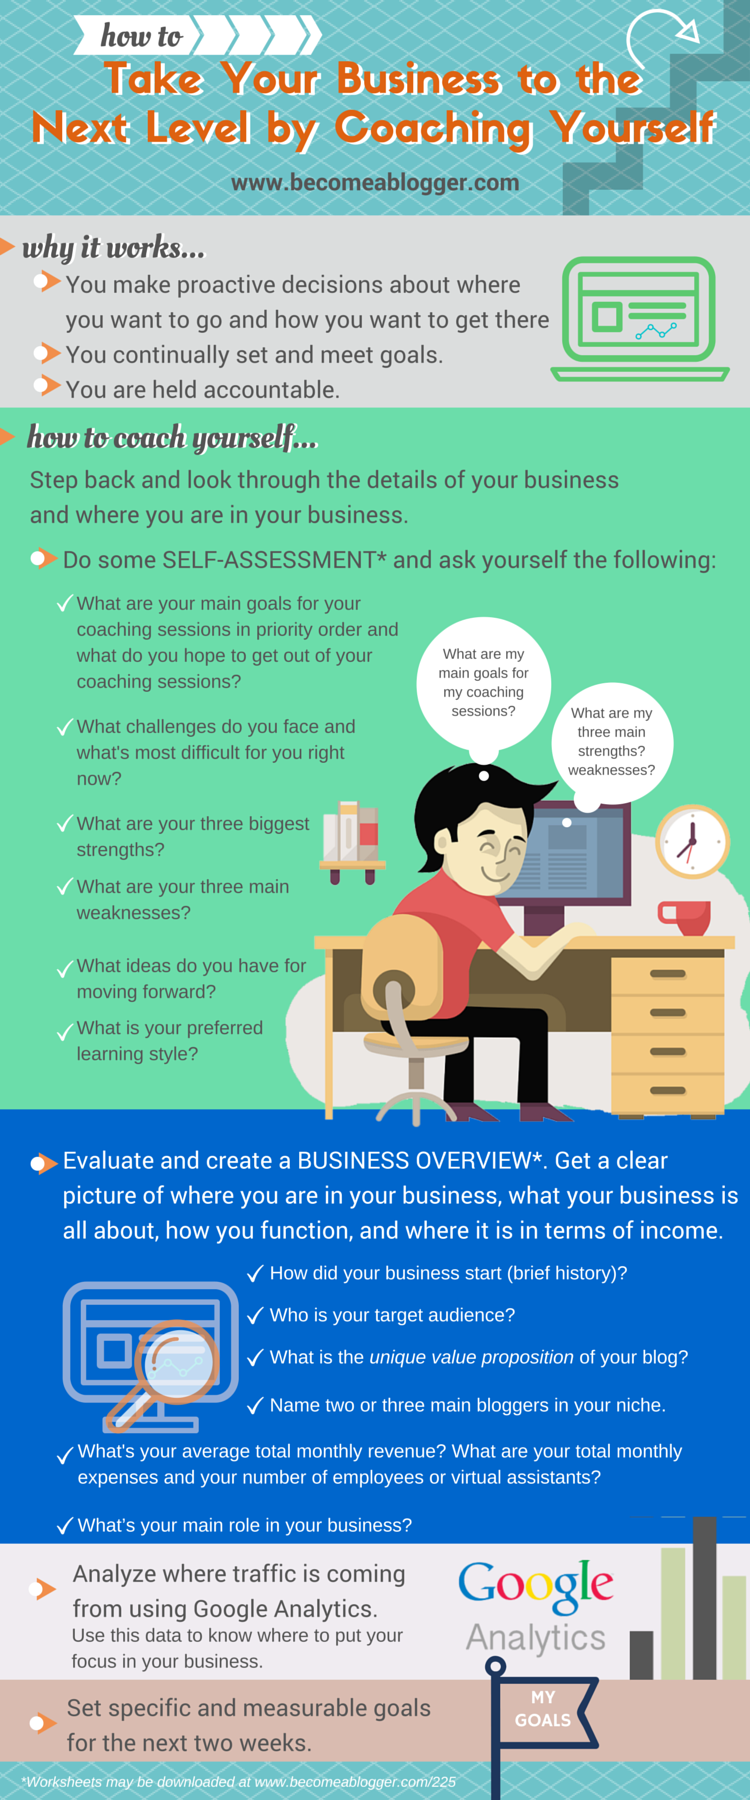 225_Coaching-Yourself_Infographic